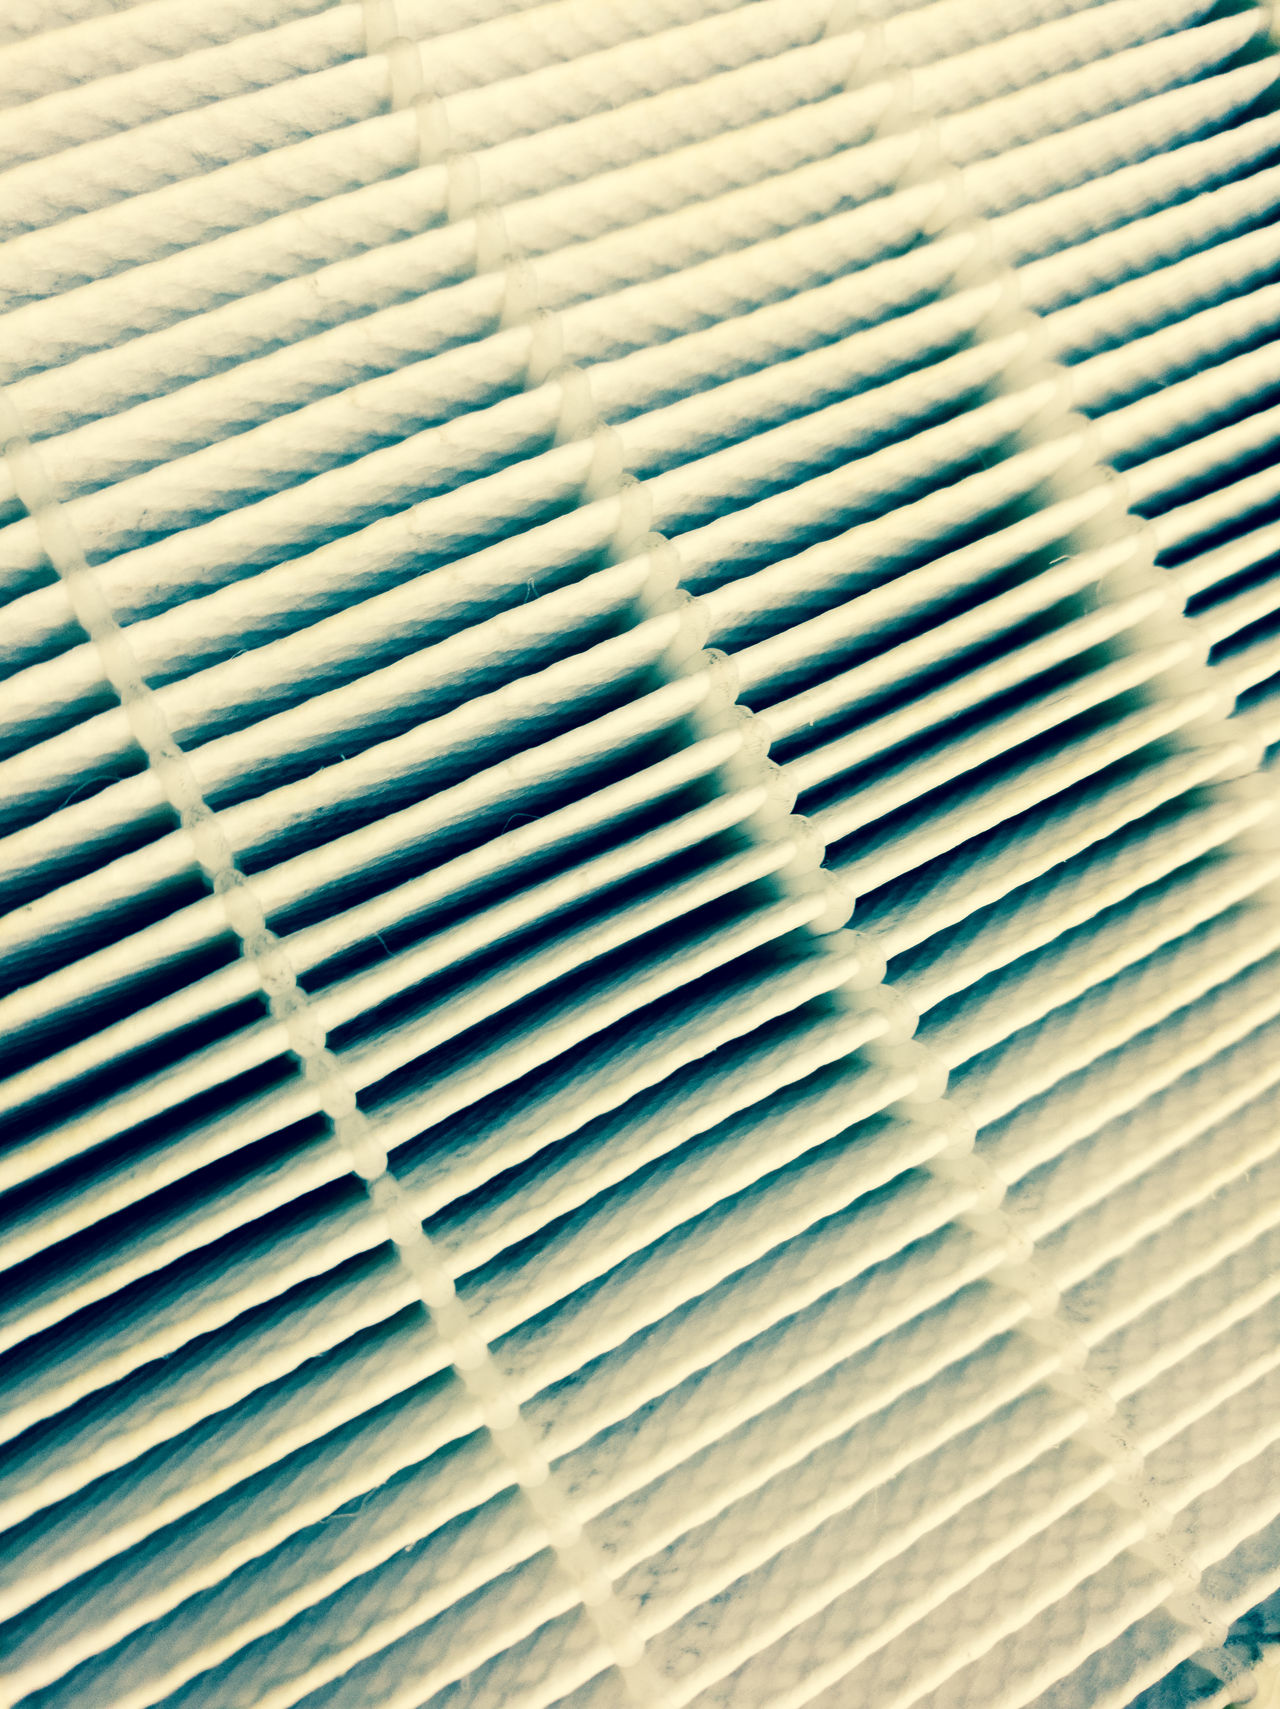 Lines: Duster I Pattern Backgrounds Full Frame No People Textured  Day Close-up Indoors  Huaweiphotography Huawei P9 Leica